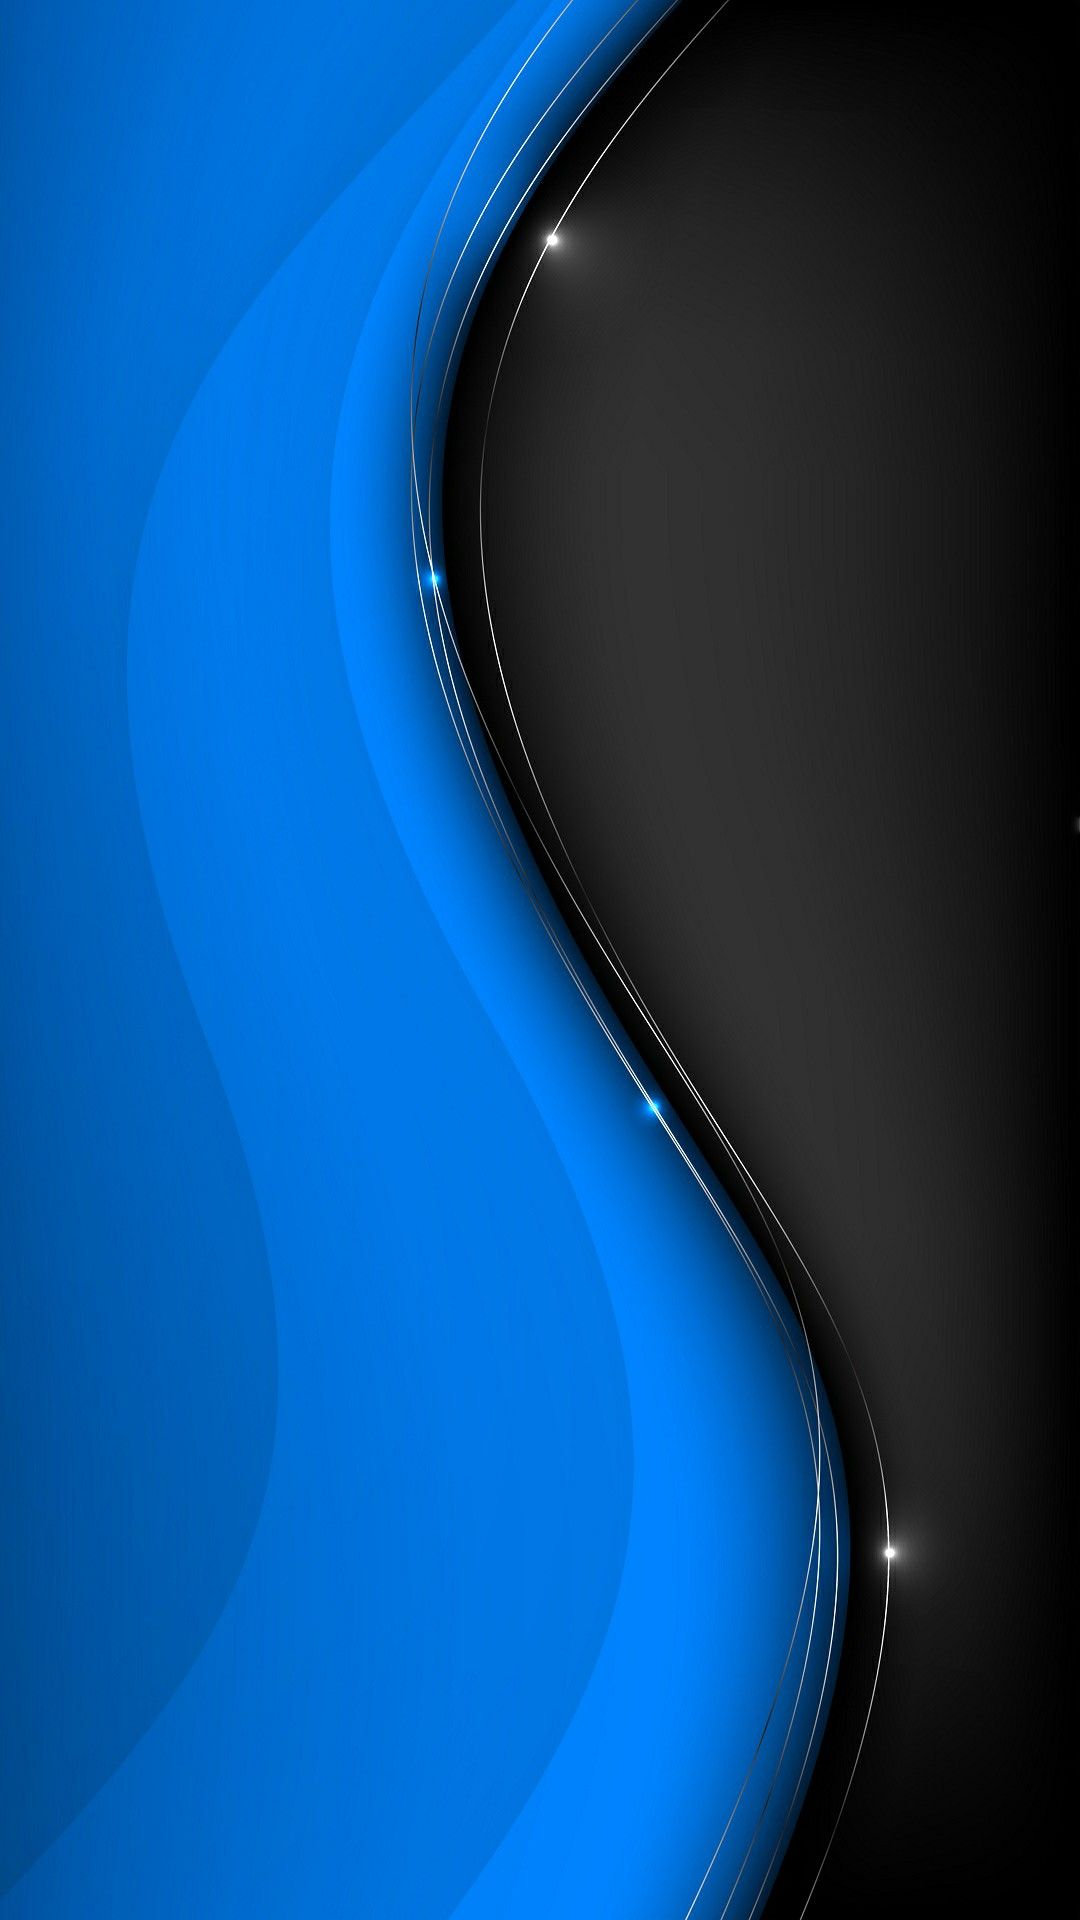 Black N Blue Black And Blue Wallpaper Blue Wallpapers Cellphone Wallpaper